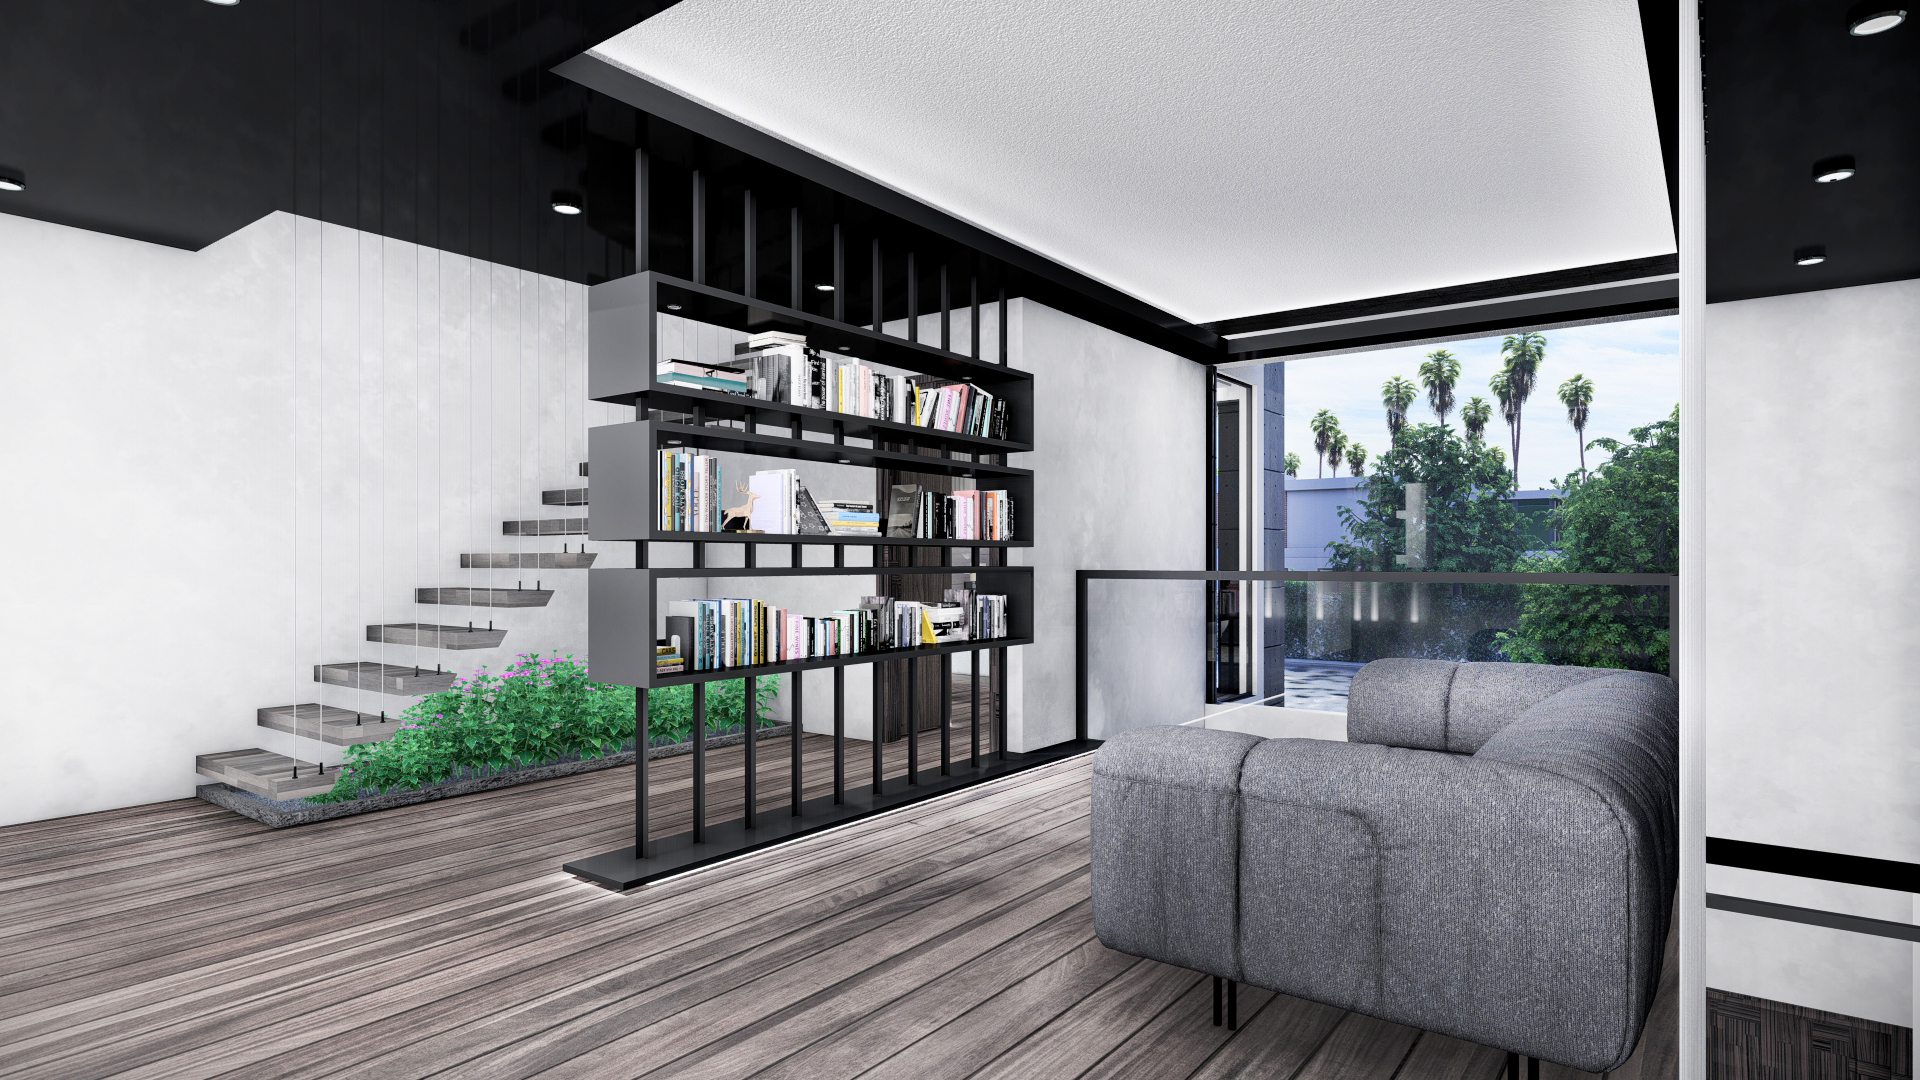 Renderings_Exterior_Interior_design_頁面_1